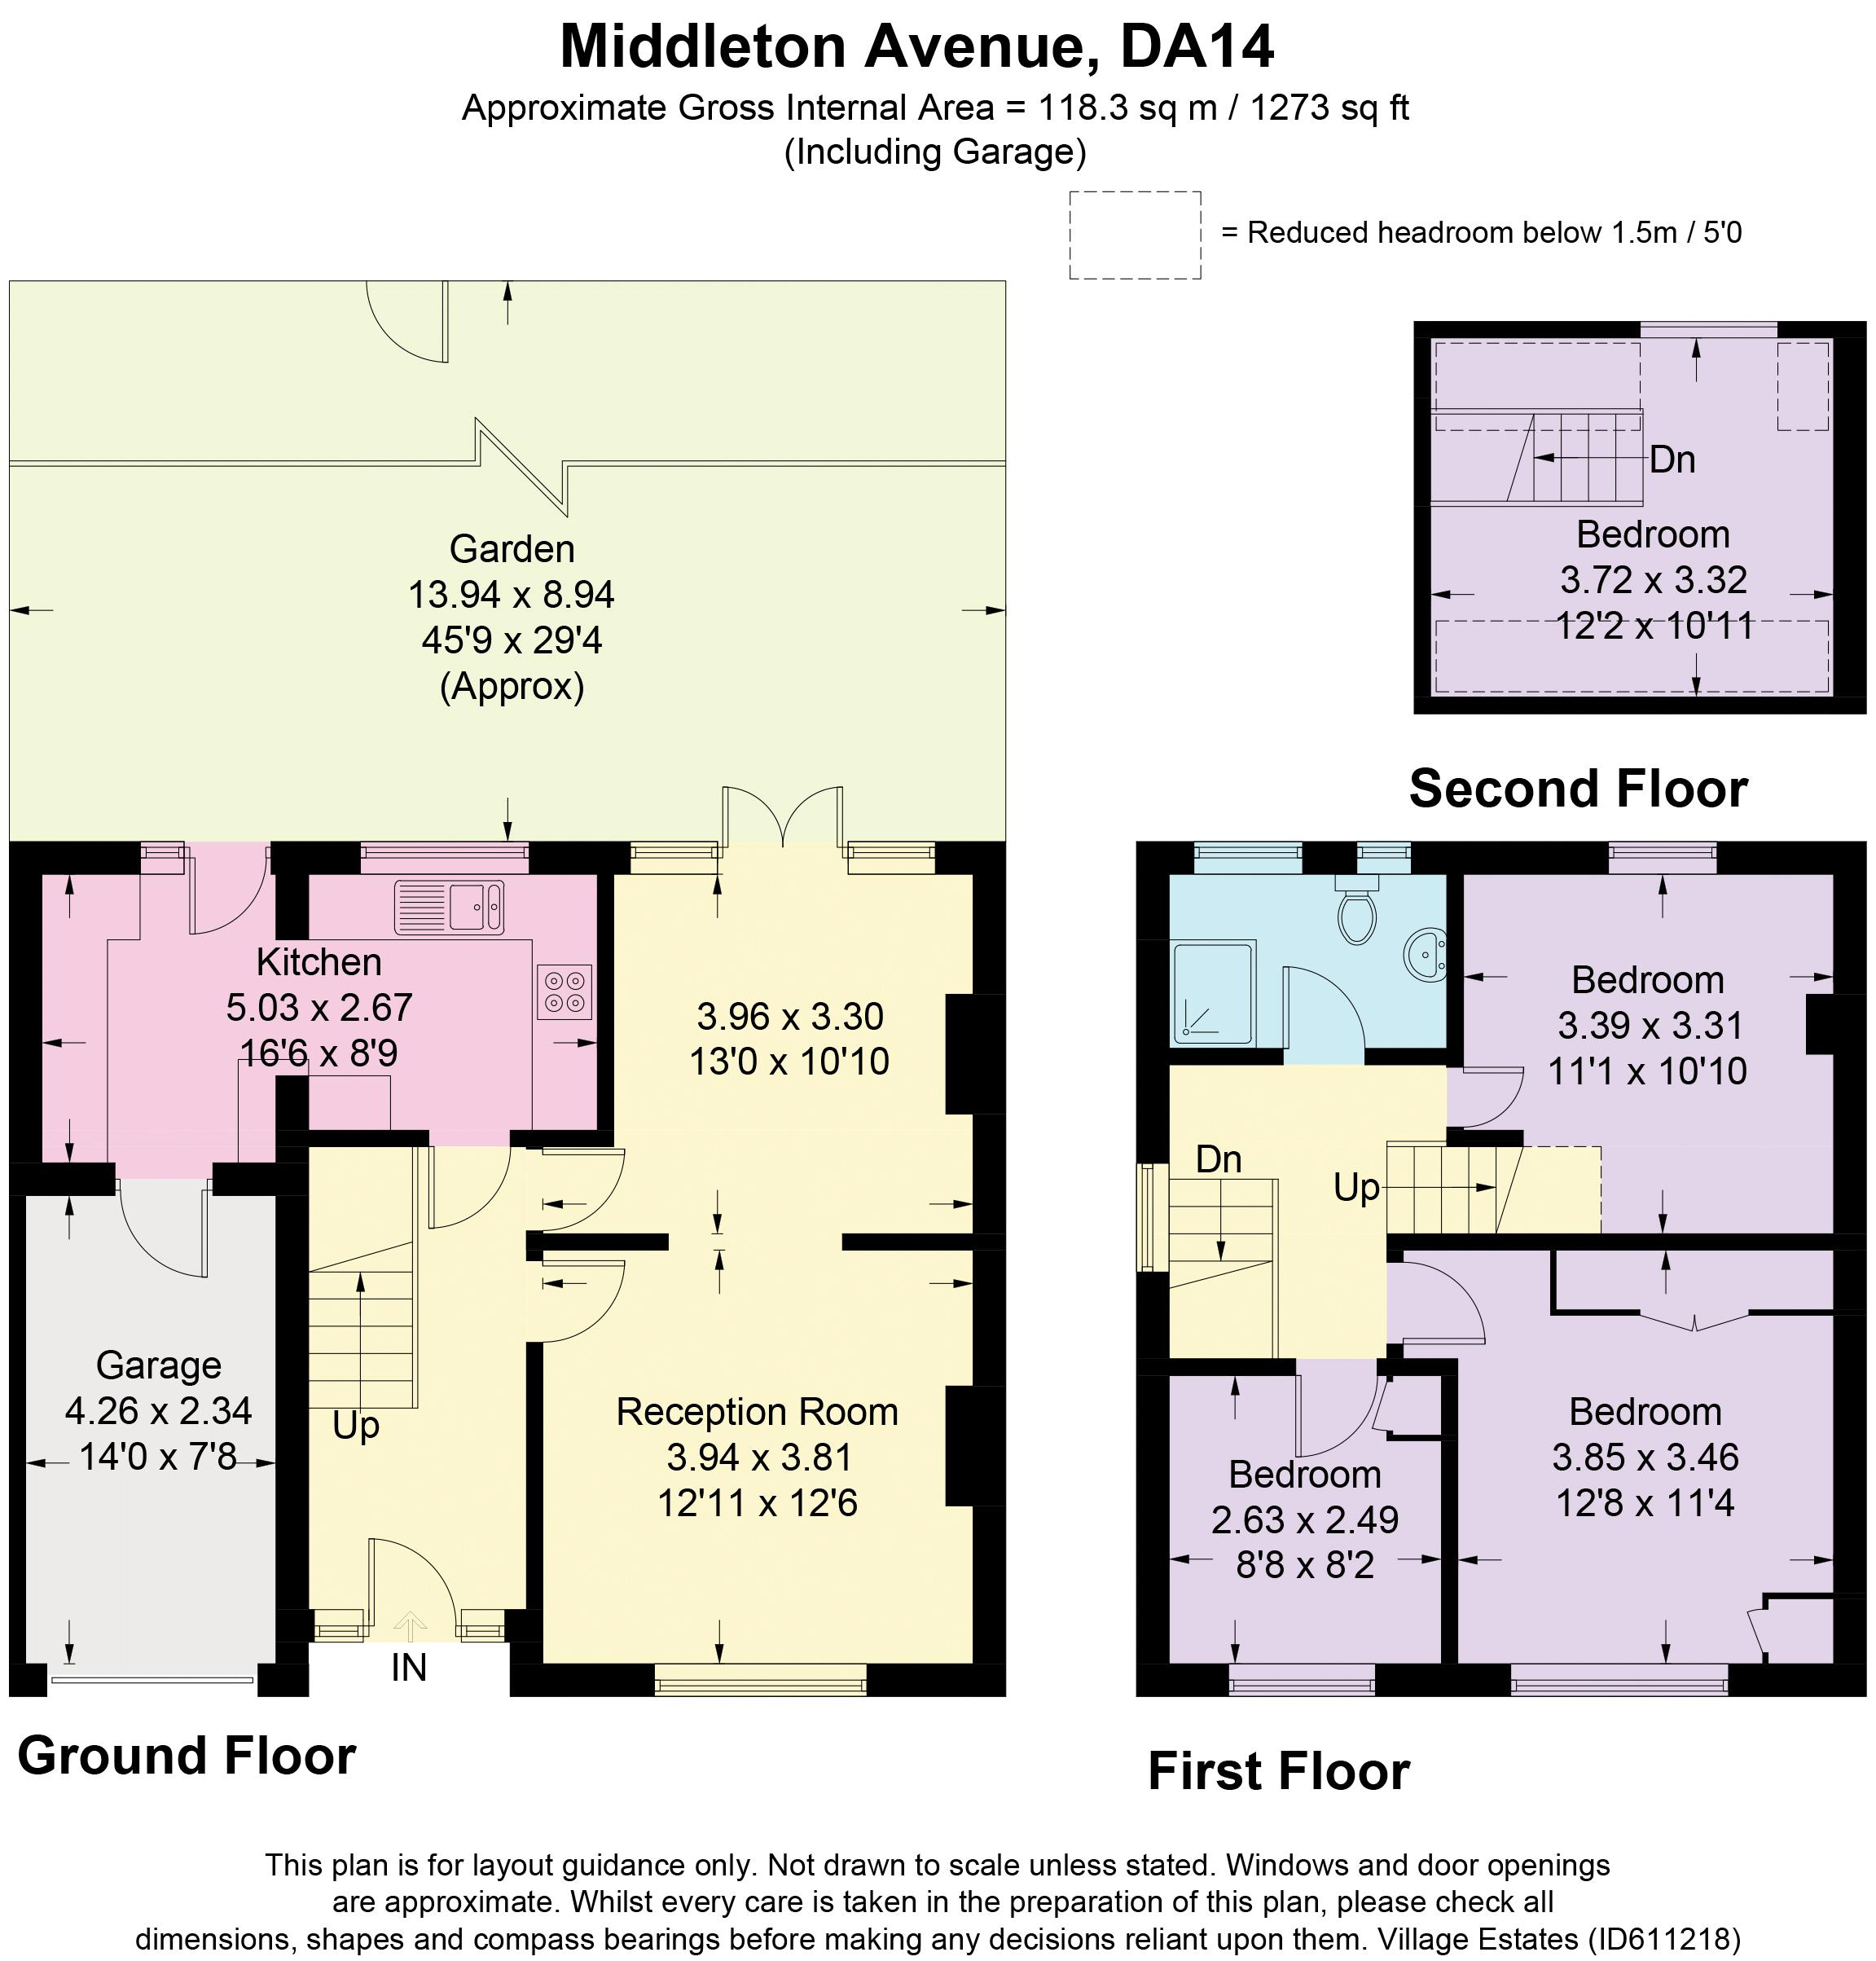 MIDDLETON AVENUE FLOORPLAN